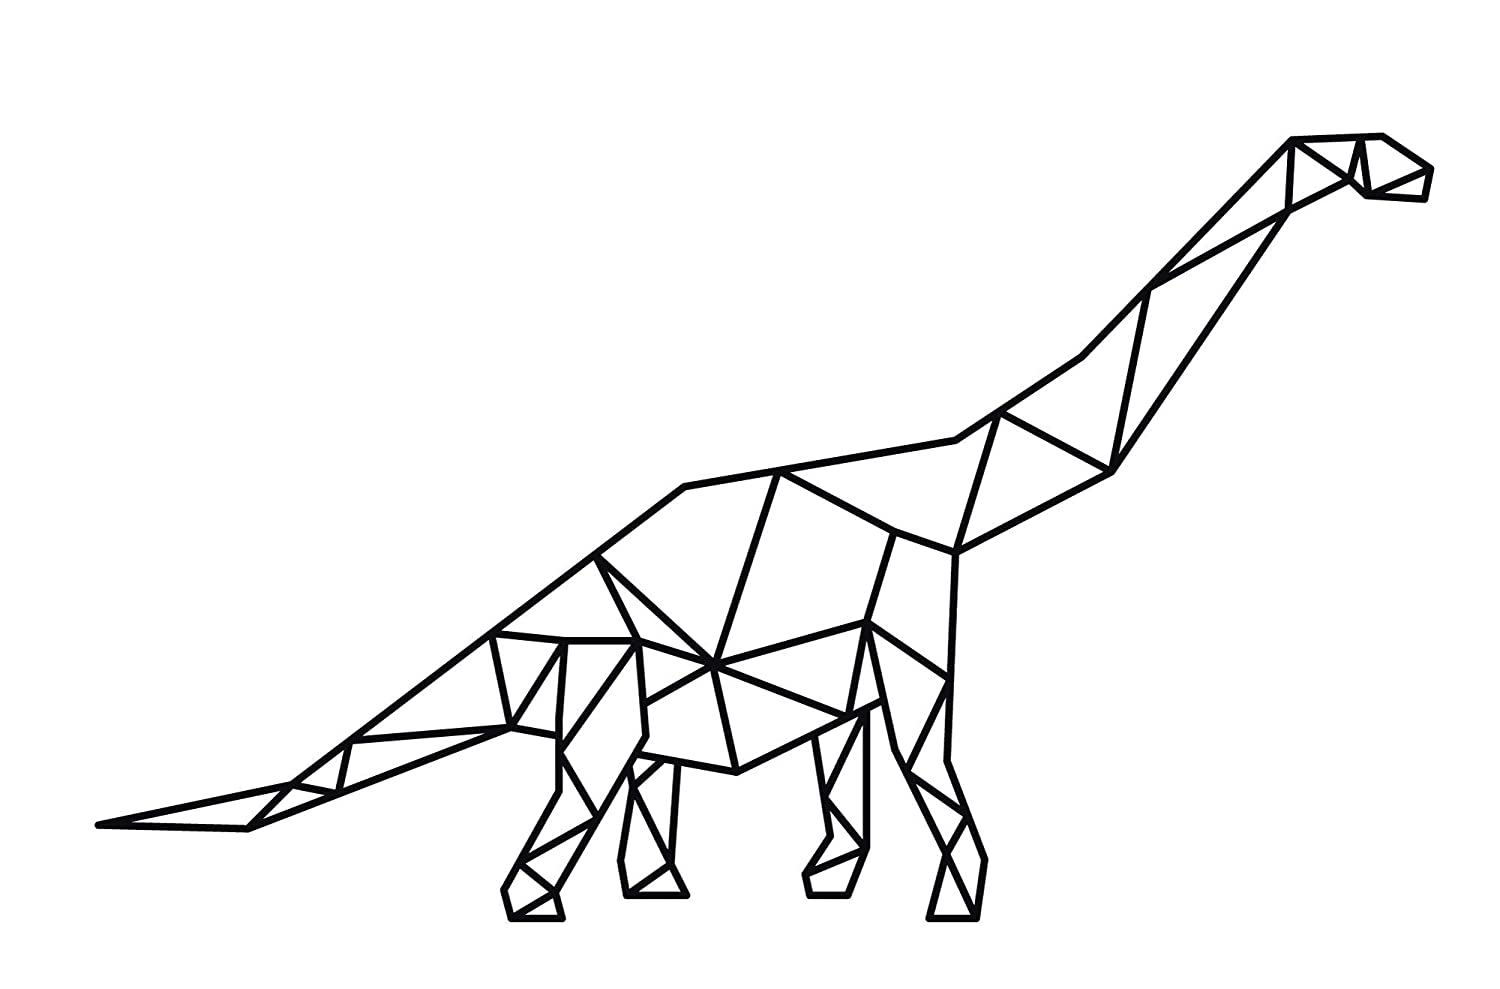 wall art sign for your home decor or as a personalised gift Brontosaurus wire silhouette Dinosaur